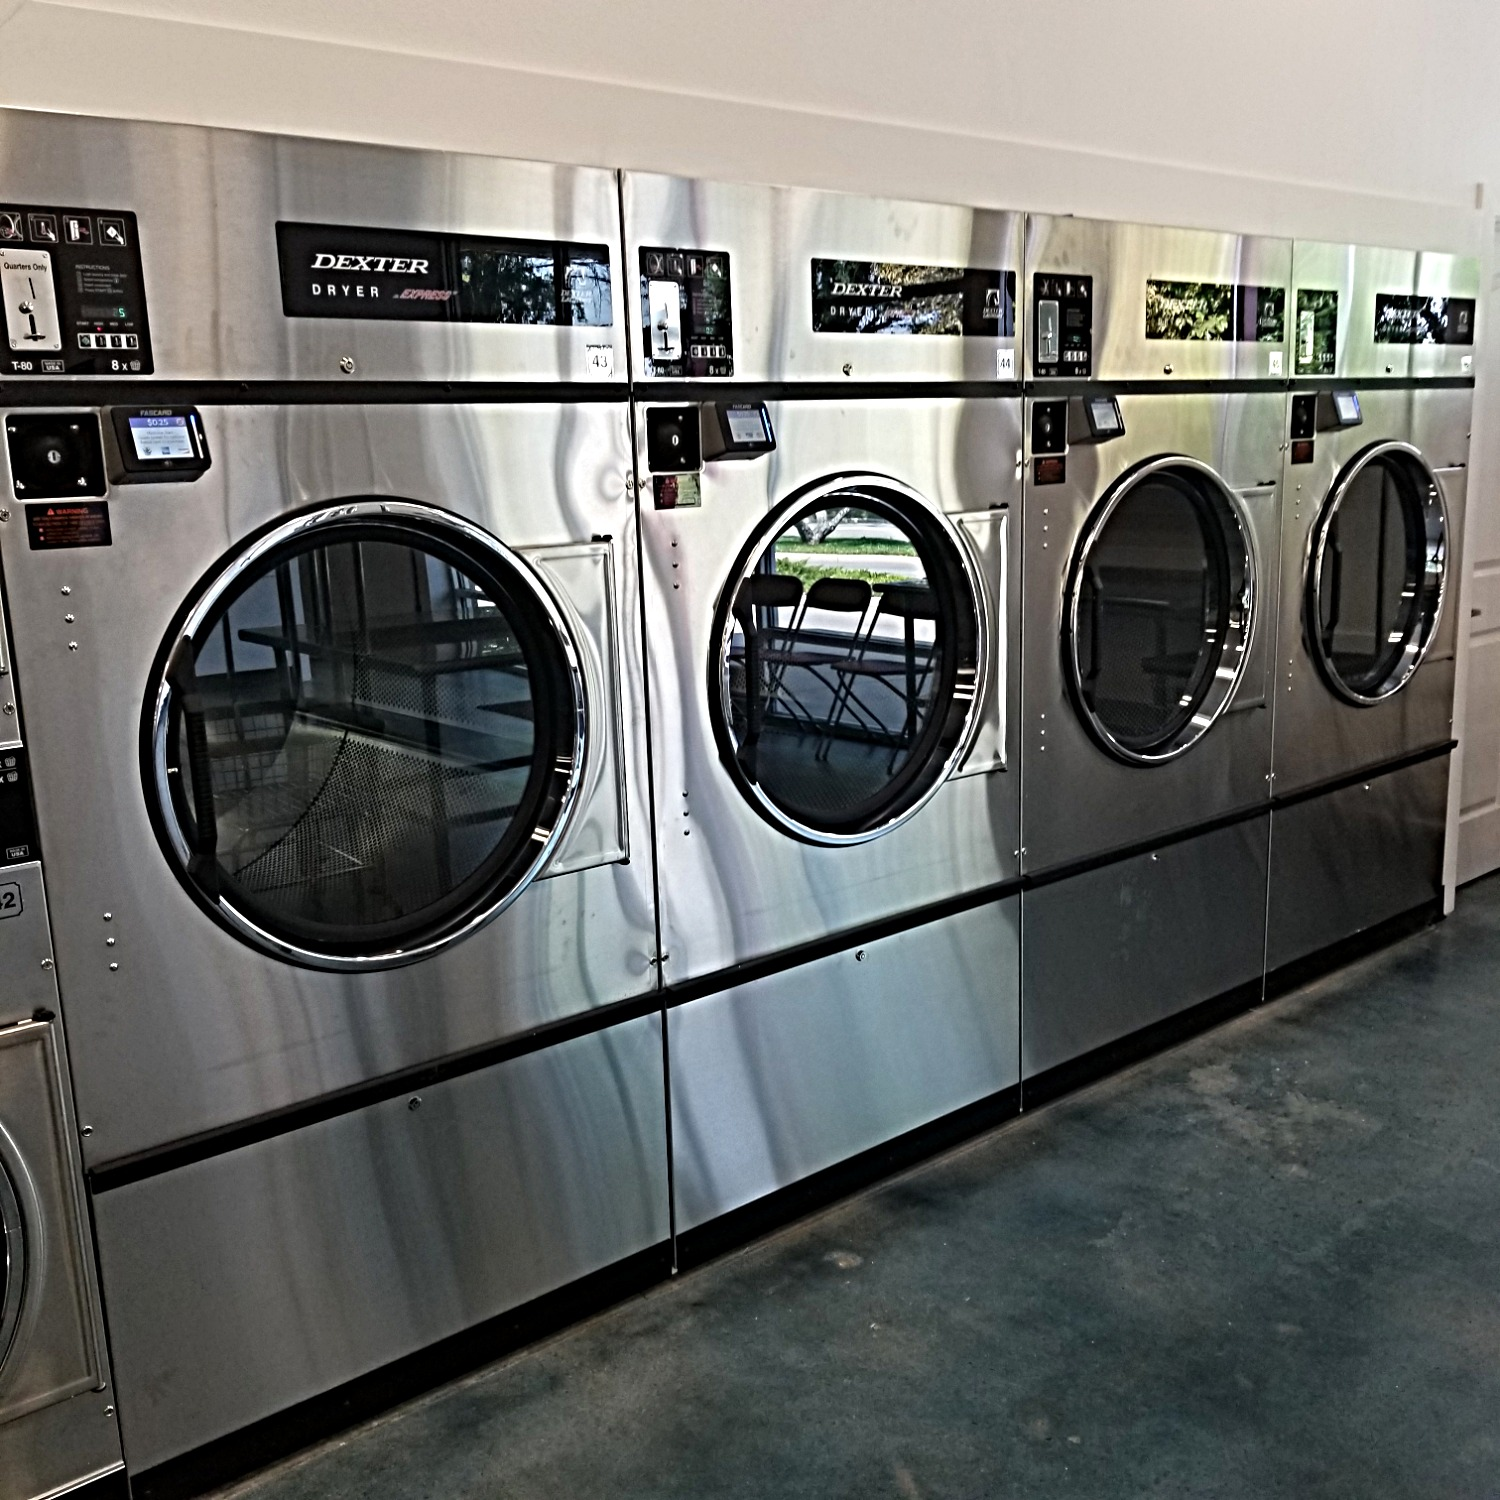 Wash'em Up 6 80lb Dryers